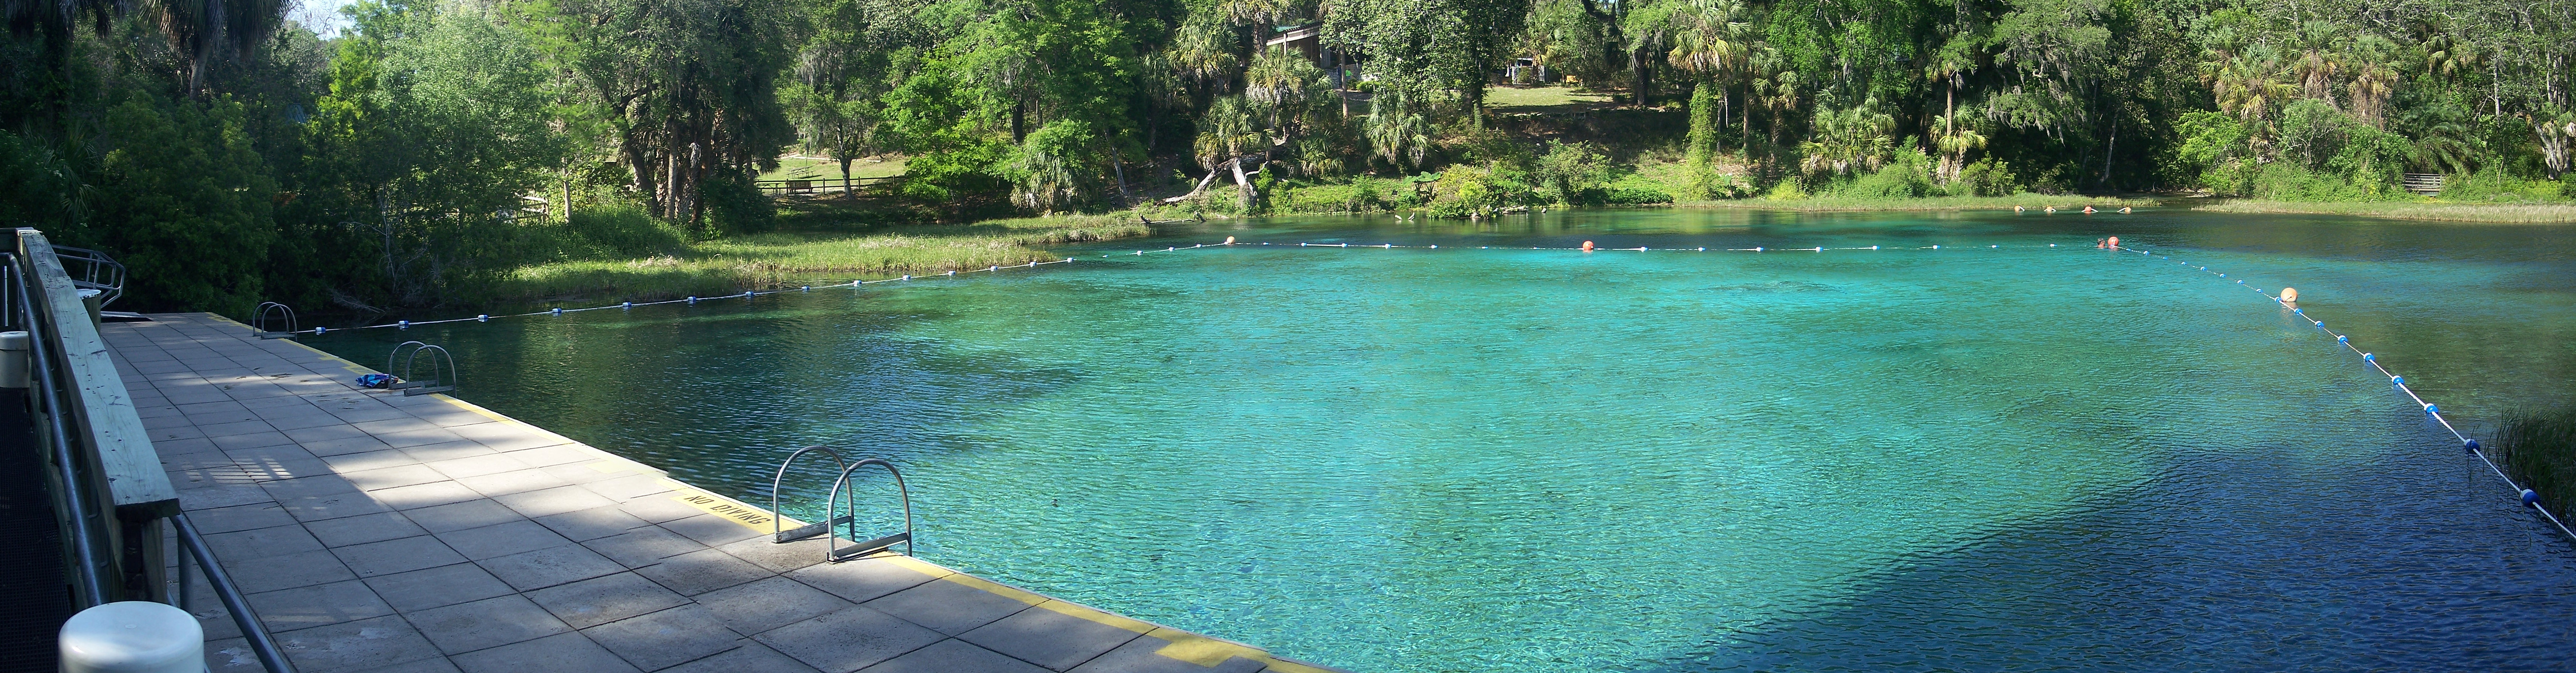 Fun Spot Action Park also 7415747594 also Wv Greensulphursprings together with 3d Photomicrography Fossil furthermore Salt Springs Recreation Area Fort Mc Coy. on florida springs